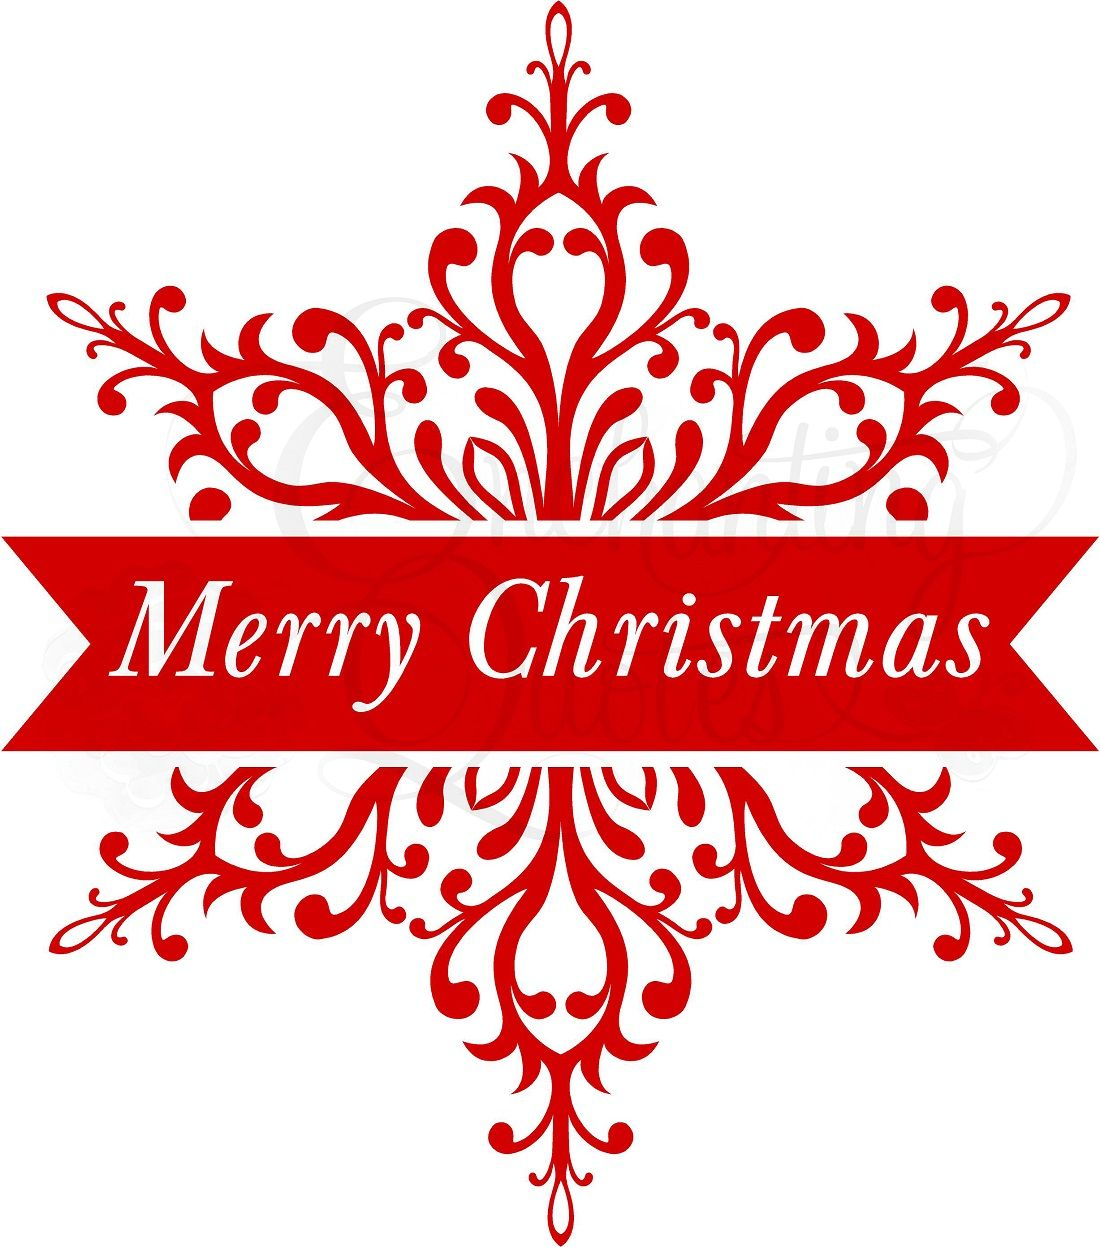 Merry Christmas Sayings.Family Quotes And Sayings For Christmas Quotesgram By